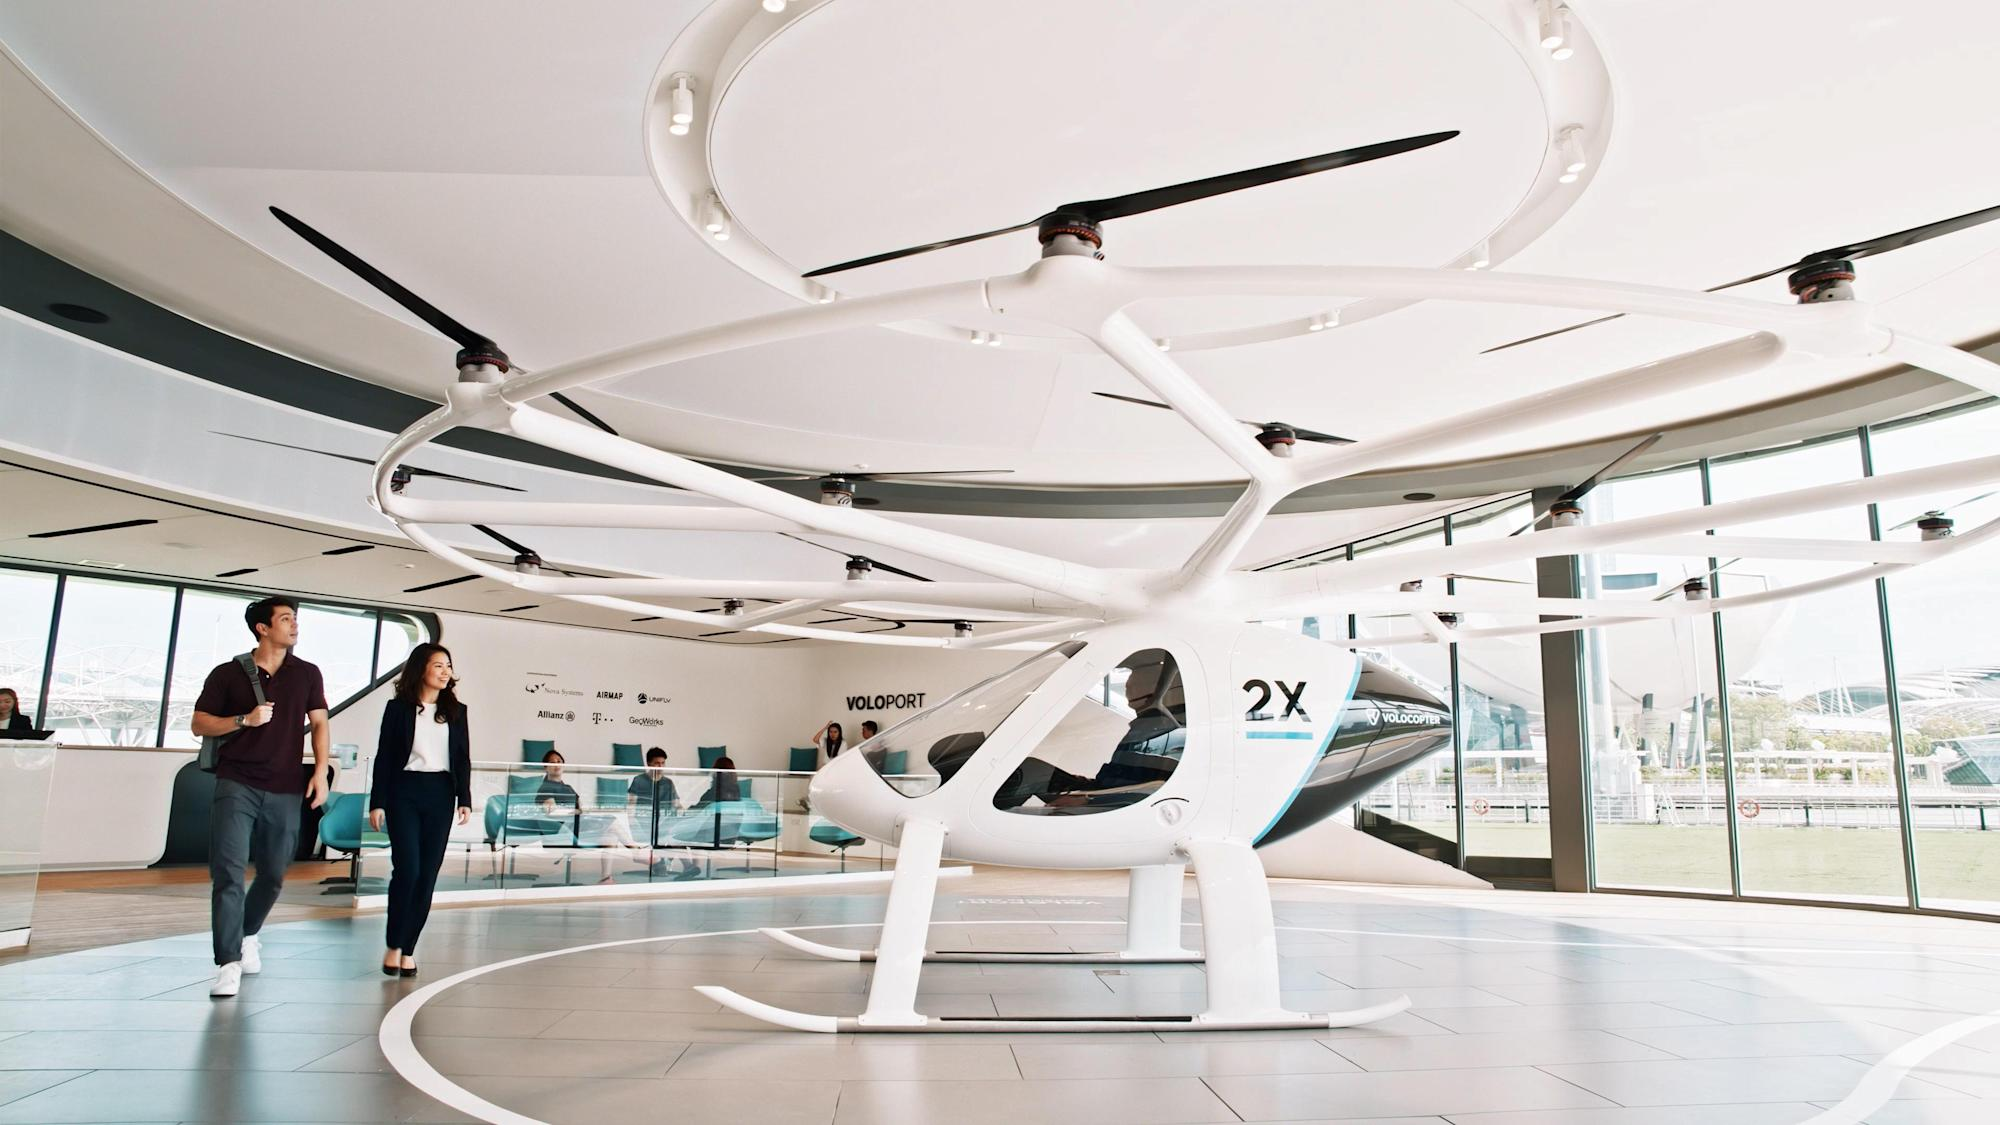 'Flying taxi' startup Volocopter picks up another $241M, says service is now two years out